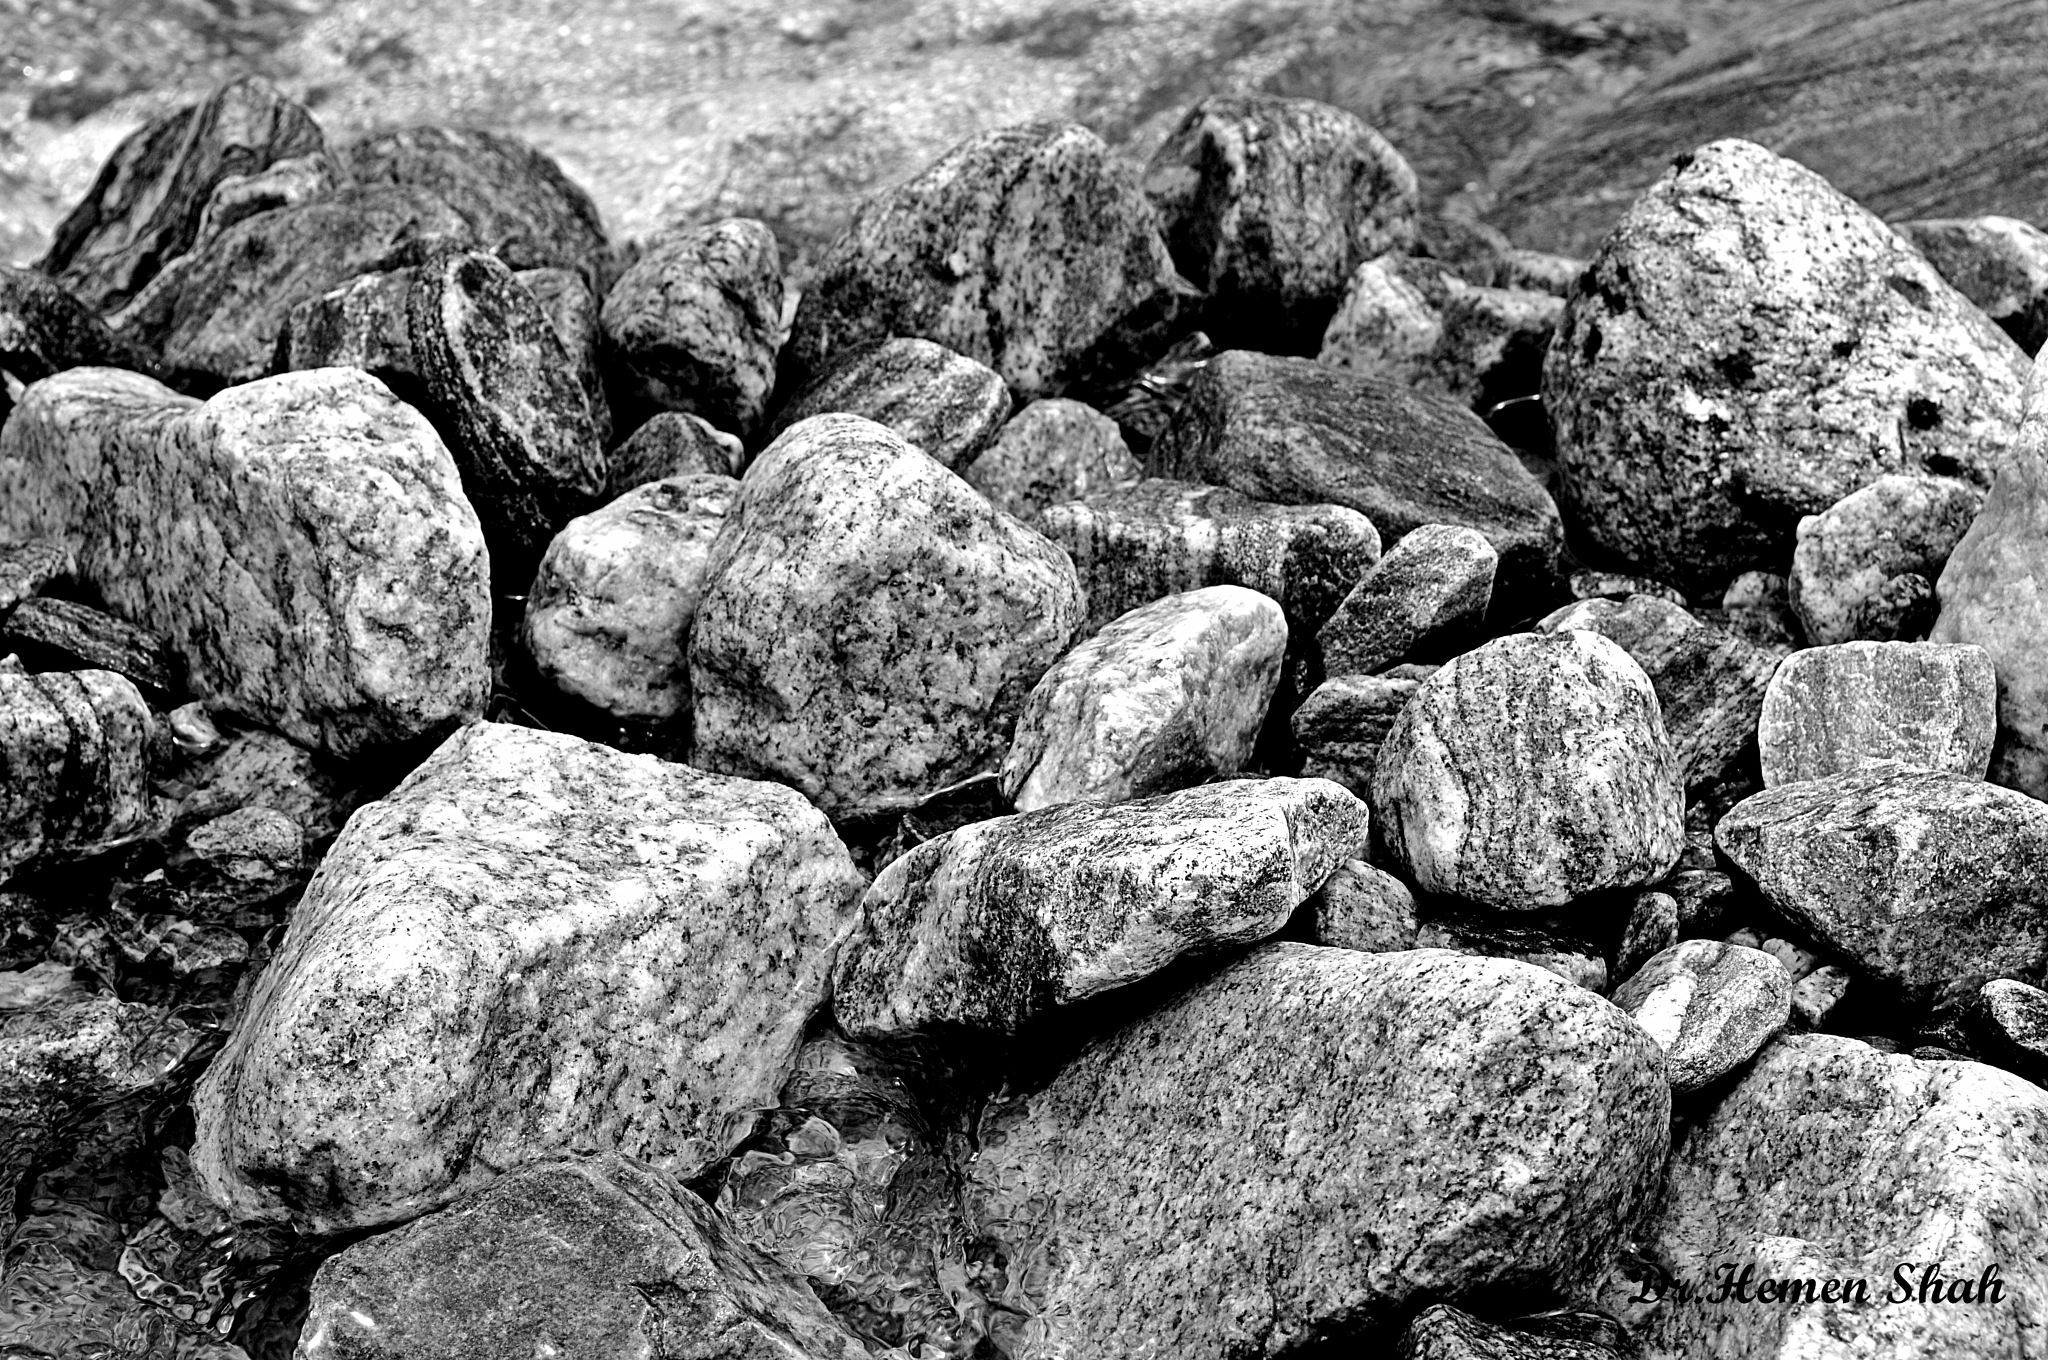 STONES AT THE RIVER BANK by Hemen